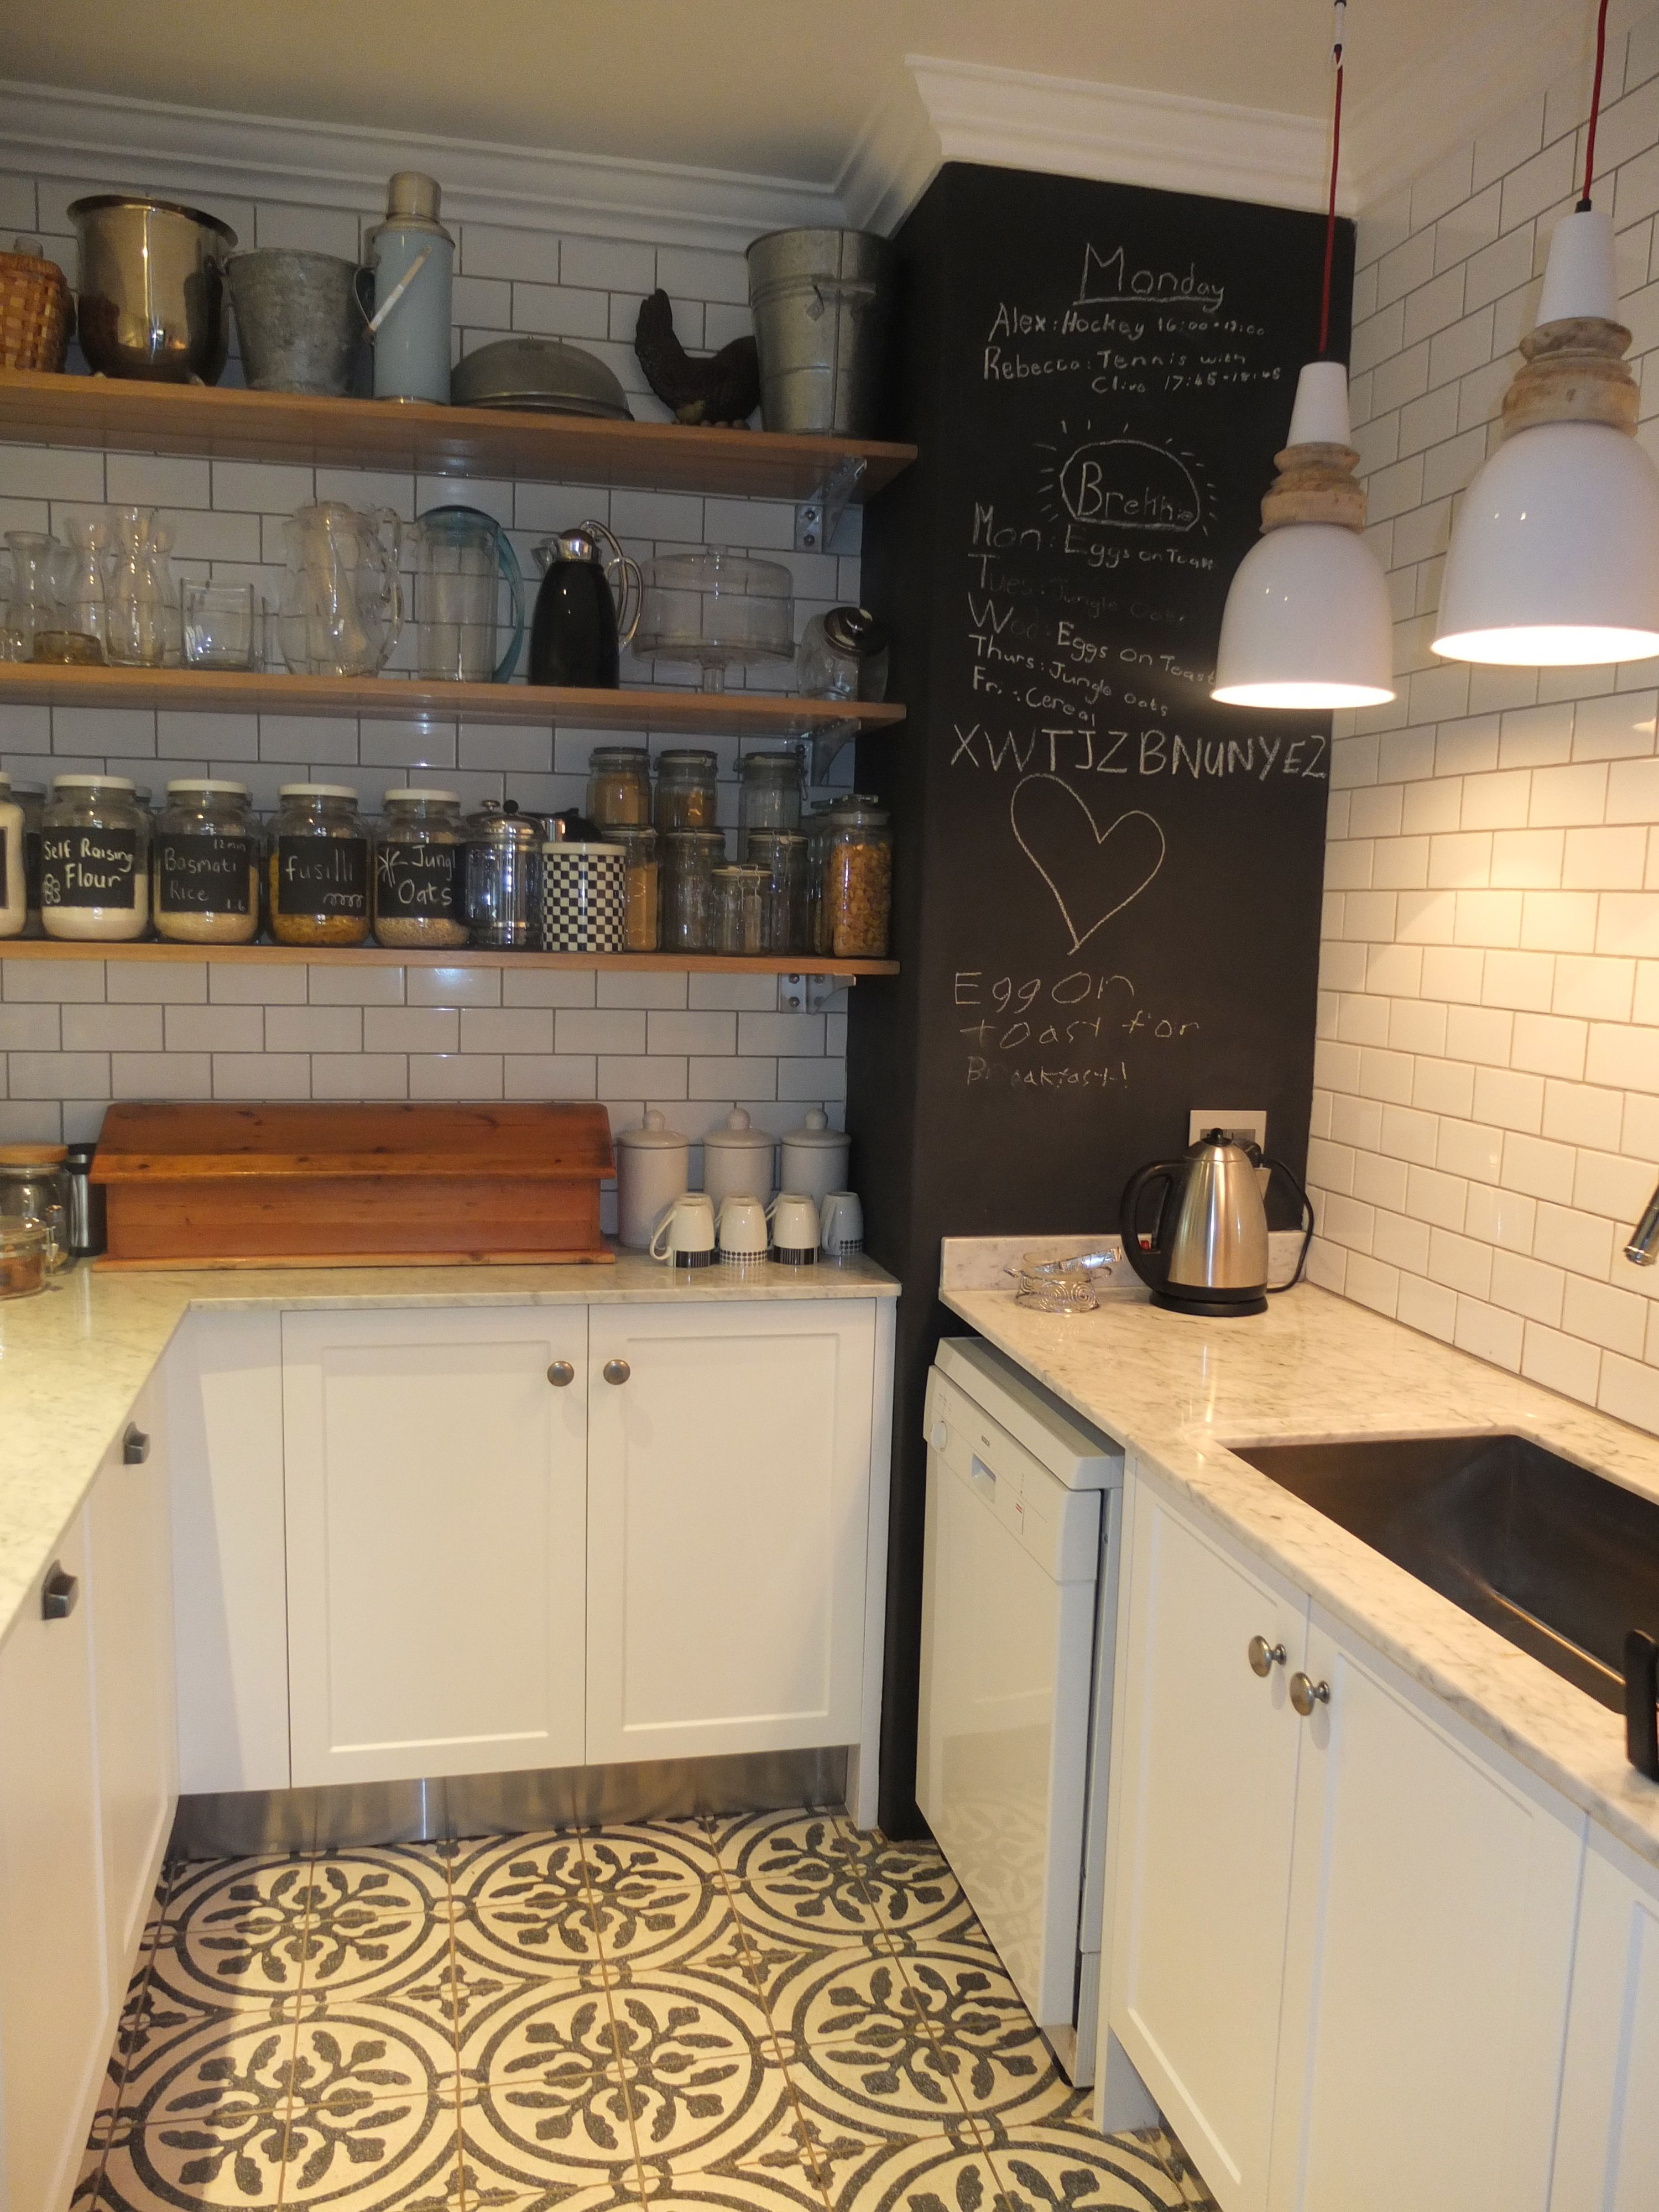 10 Kitchen And Home Decor Items Every 20 Something Needs: Wooden Shelving And Metro Tiles For Kitchen And Also Love